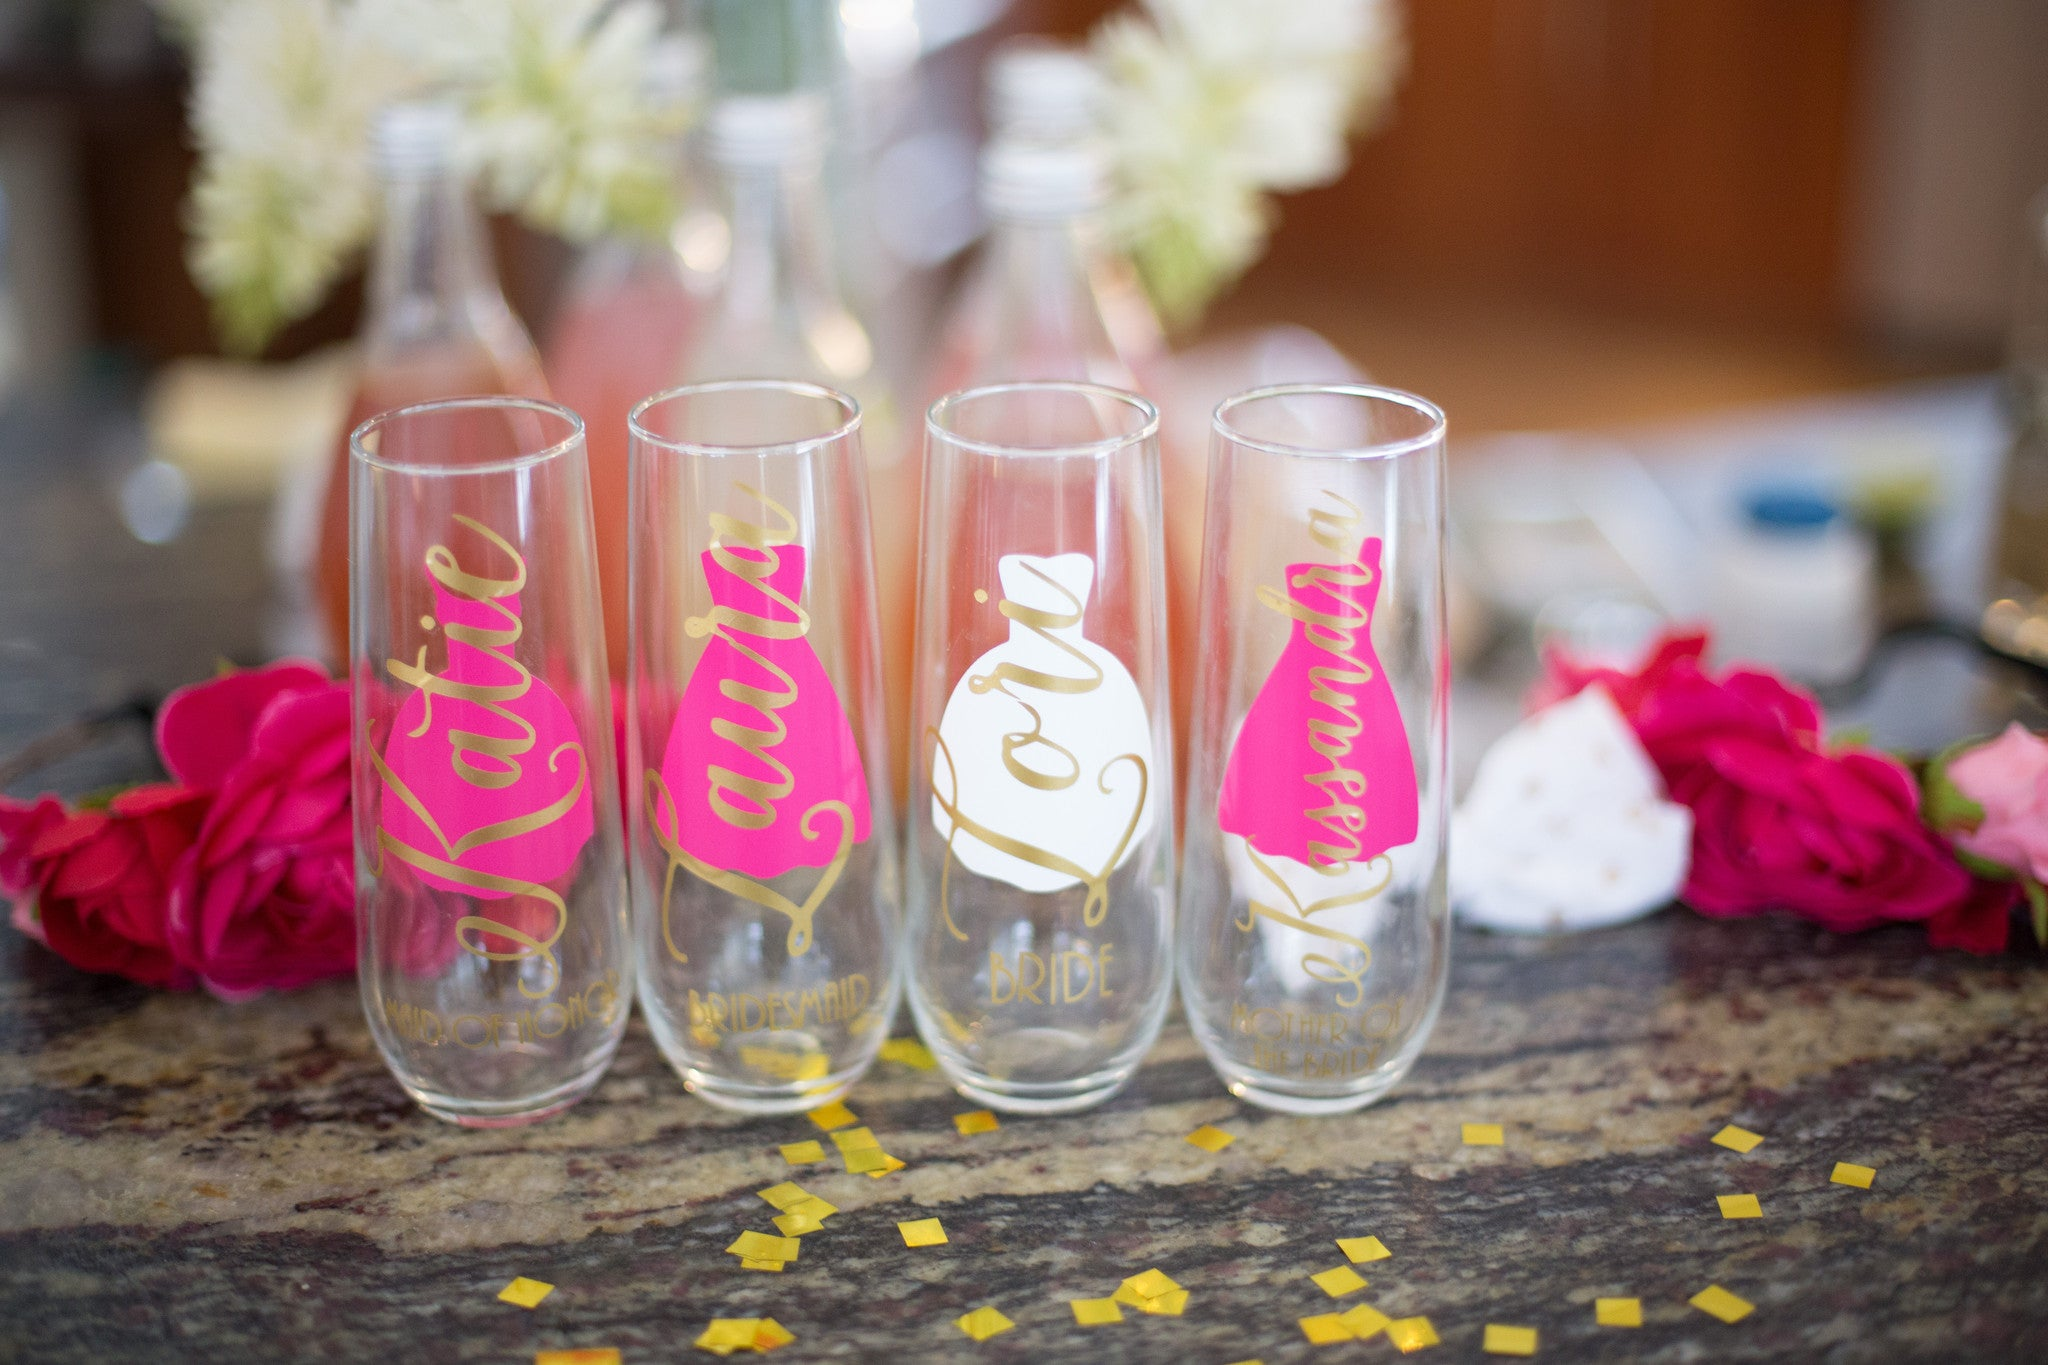 Personalized Bridesmaid gift ideas. Custom wedding glasses and apparel